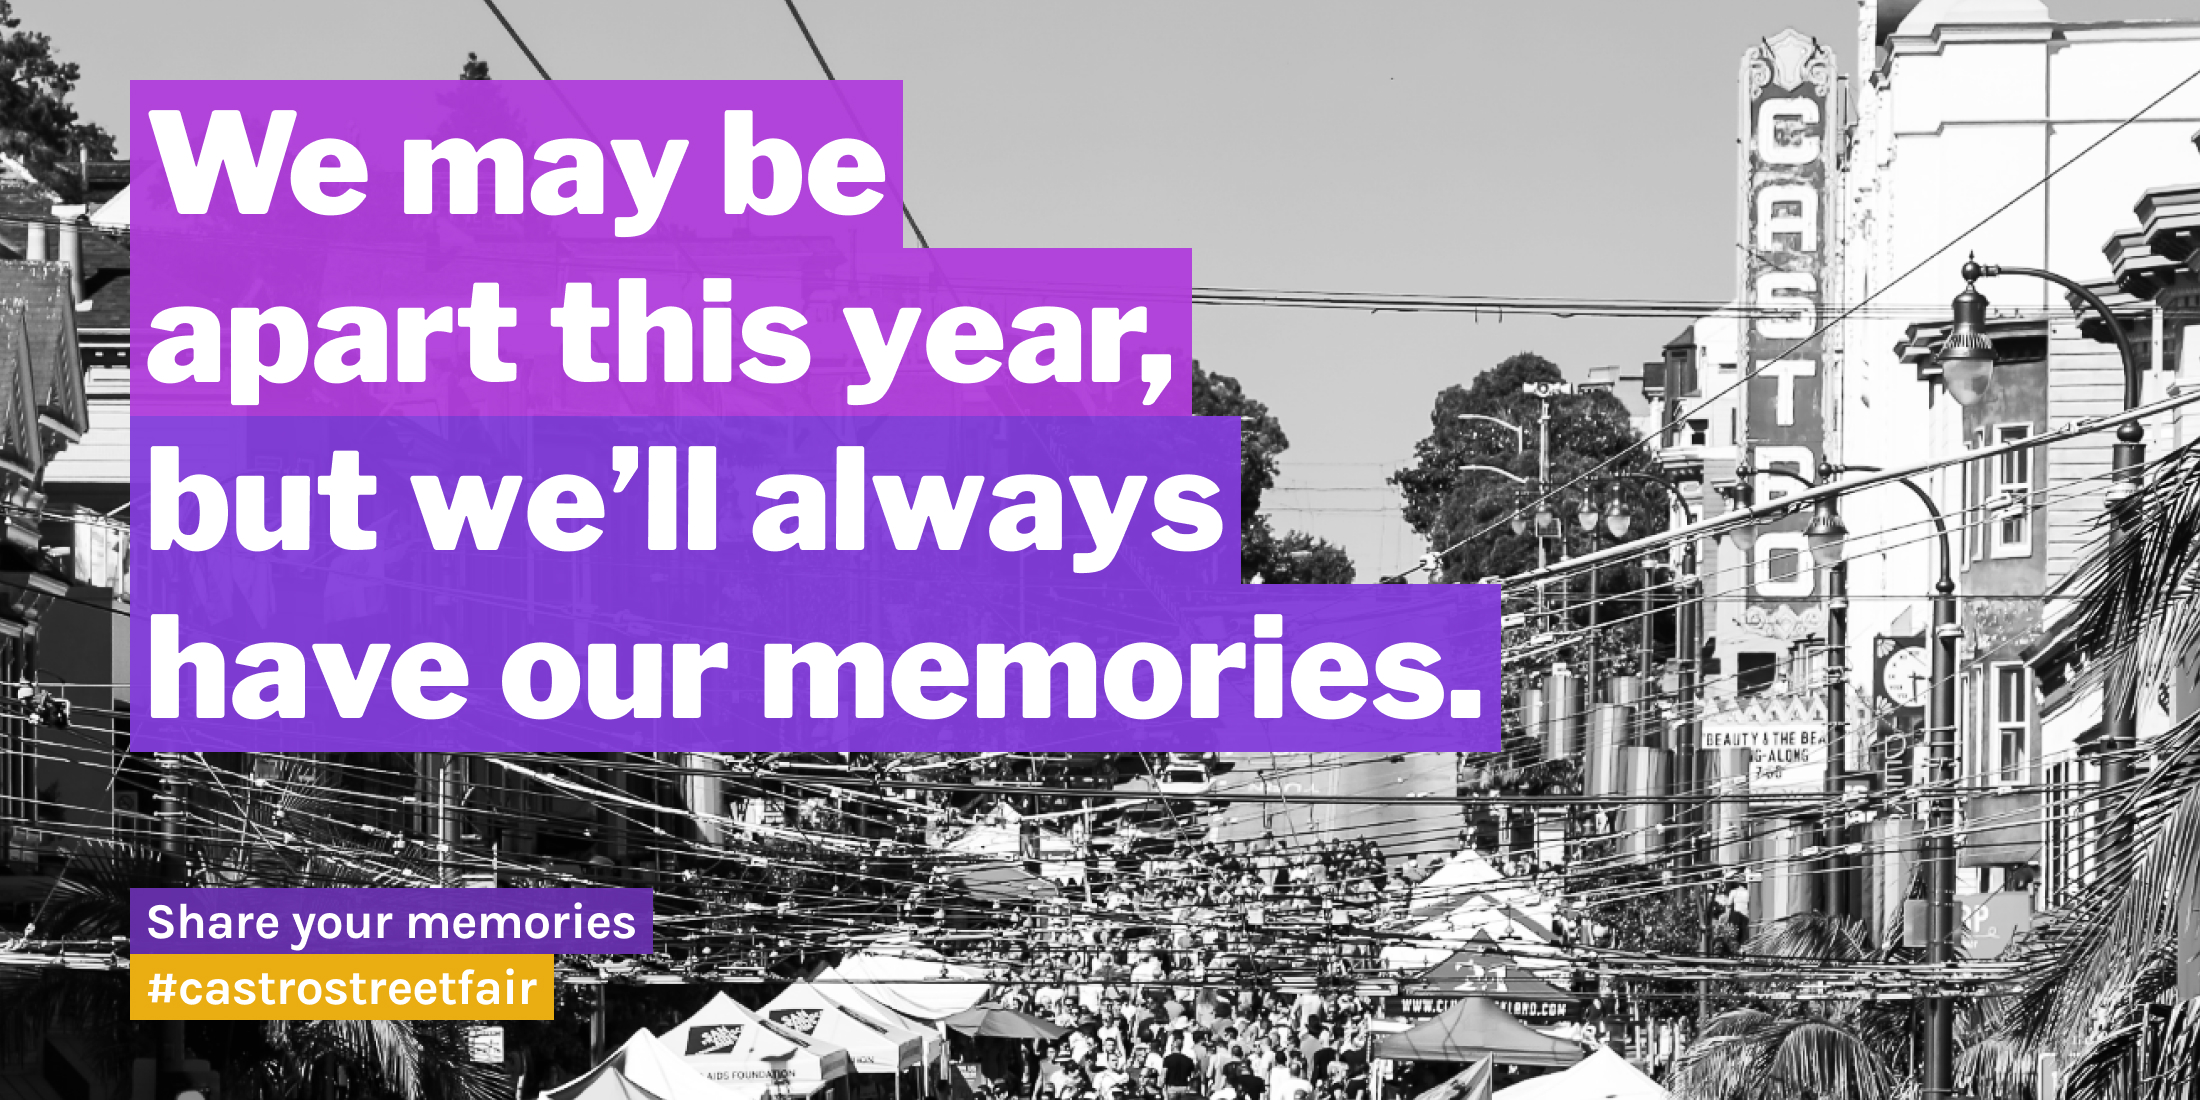 We may be apart this year, but we'll always have our memories. Share you memories of the Castro Street Fair!